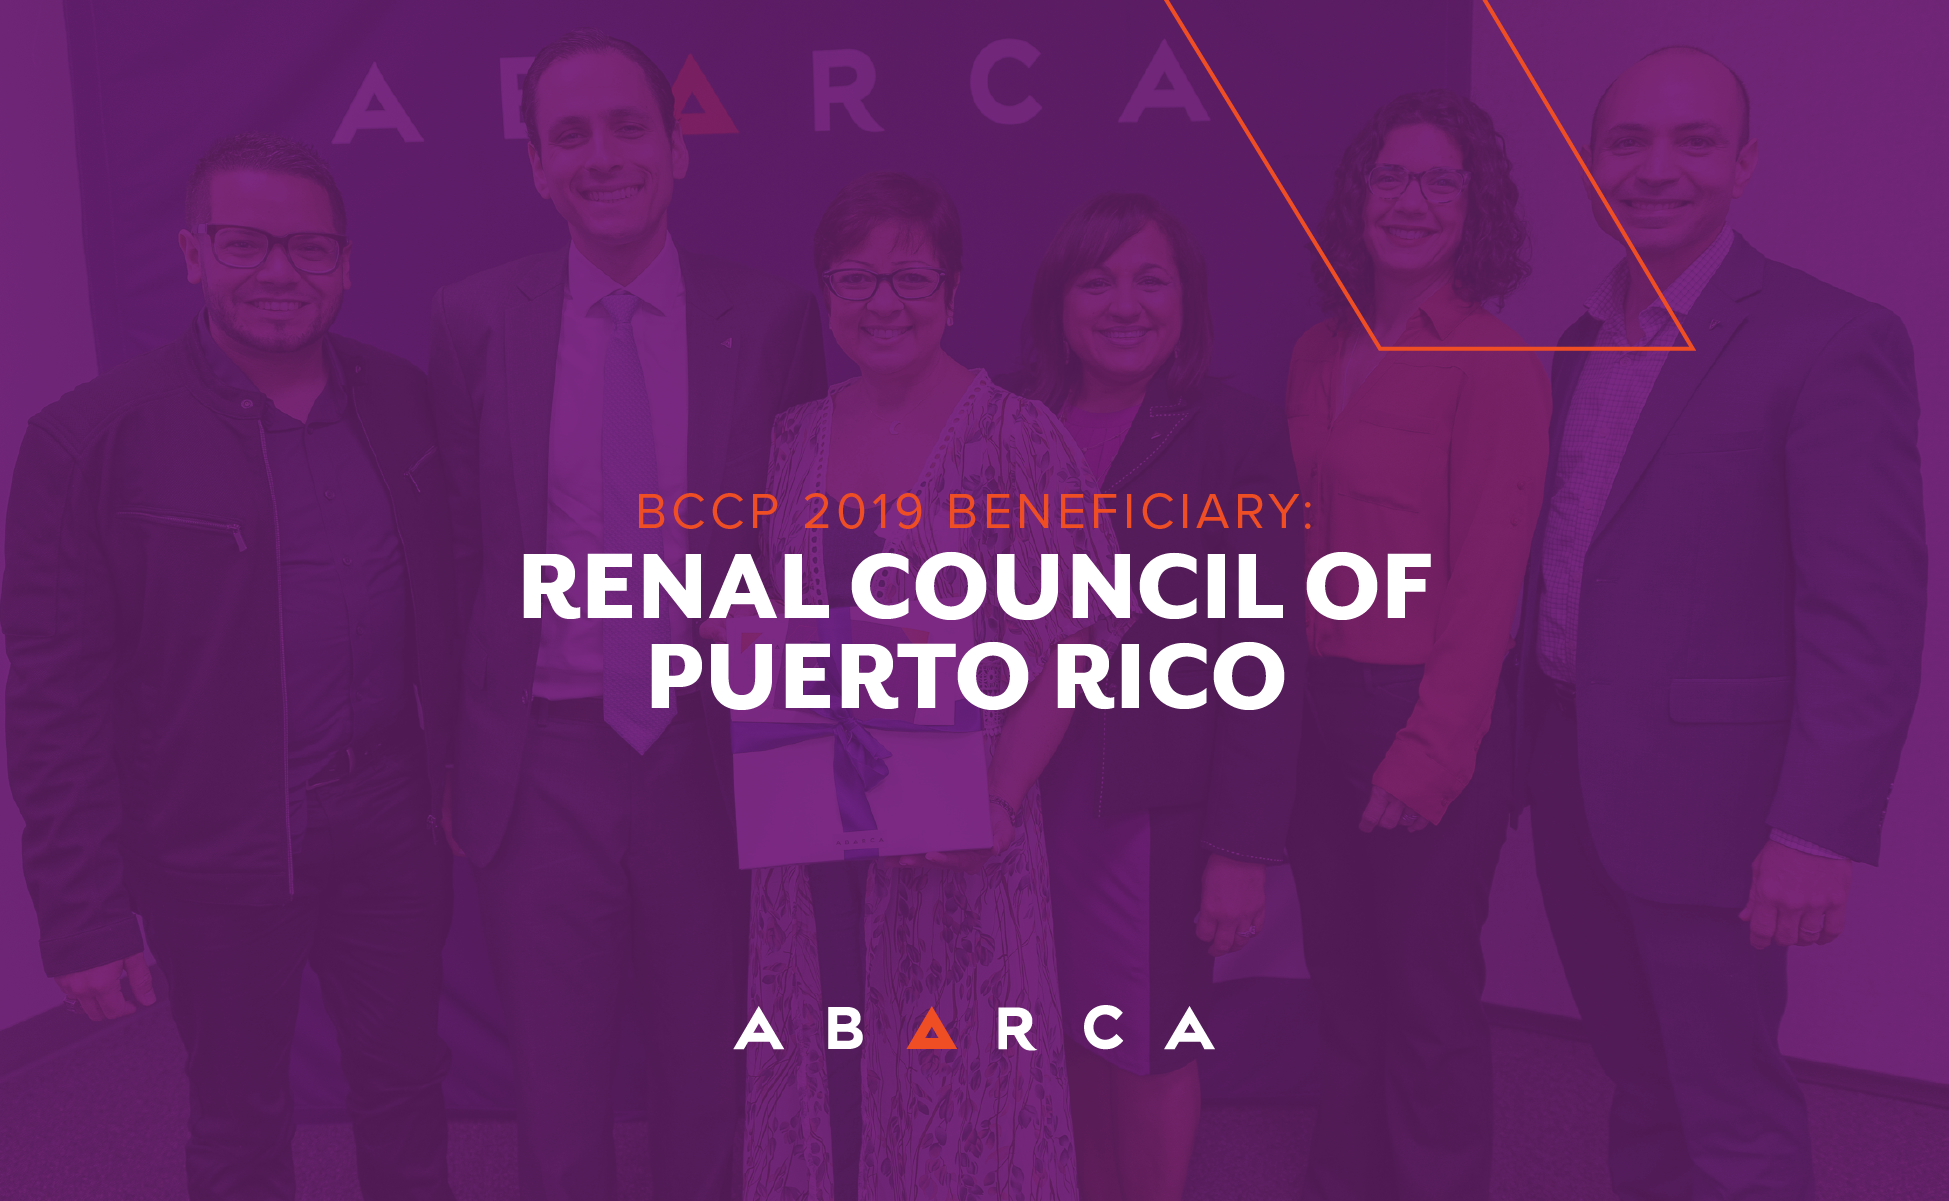 Abarca & Better Care: Combating Renal Disease in Puerto Rico